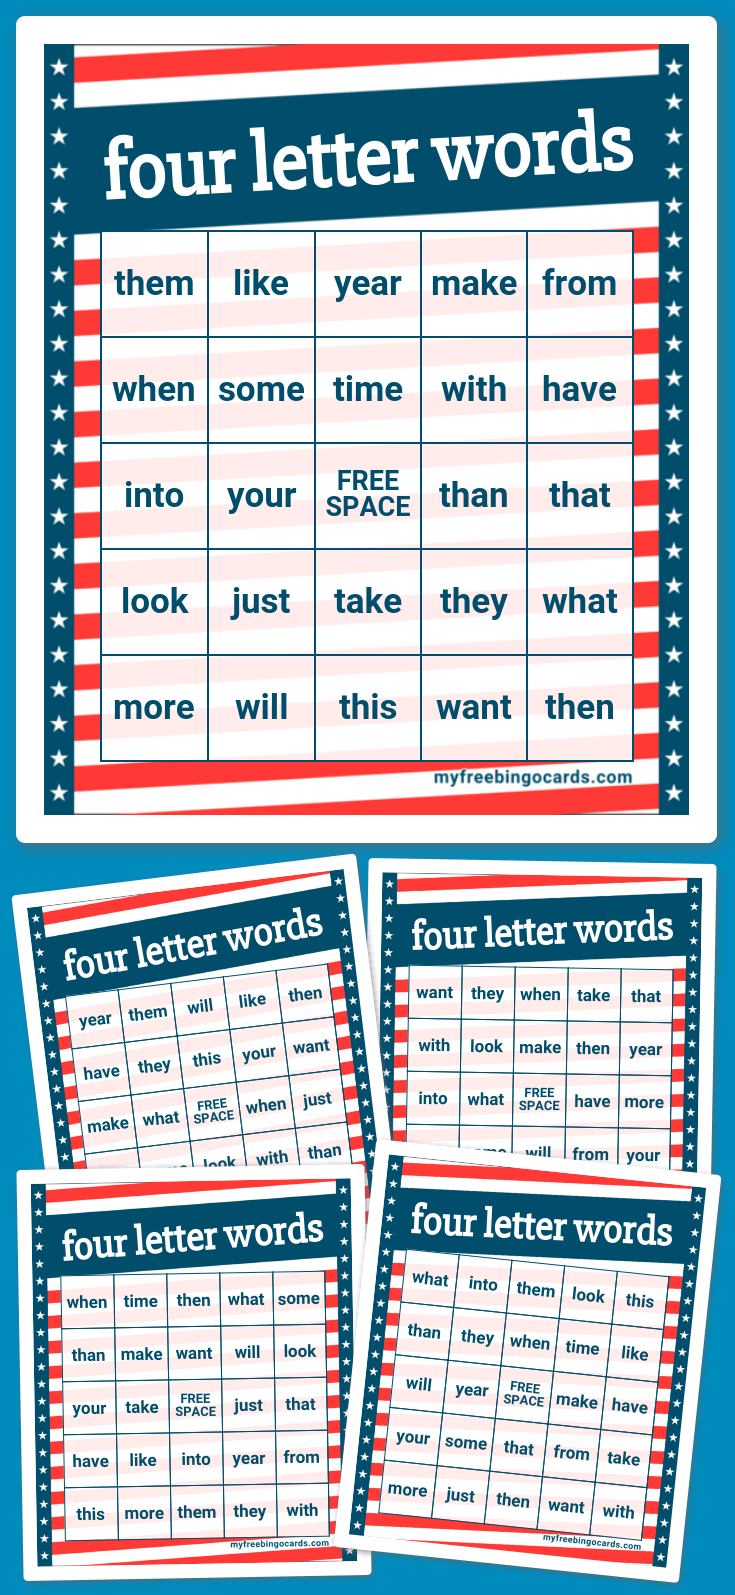 four letter words four letter words bingo 21811